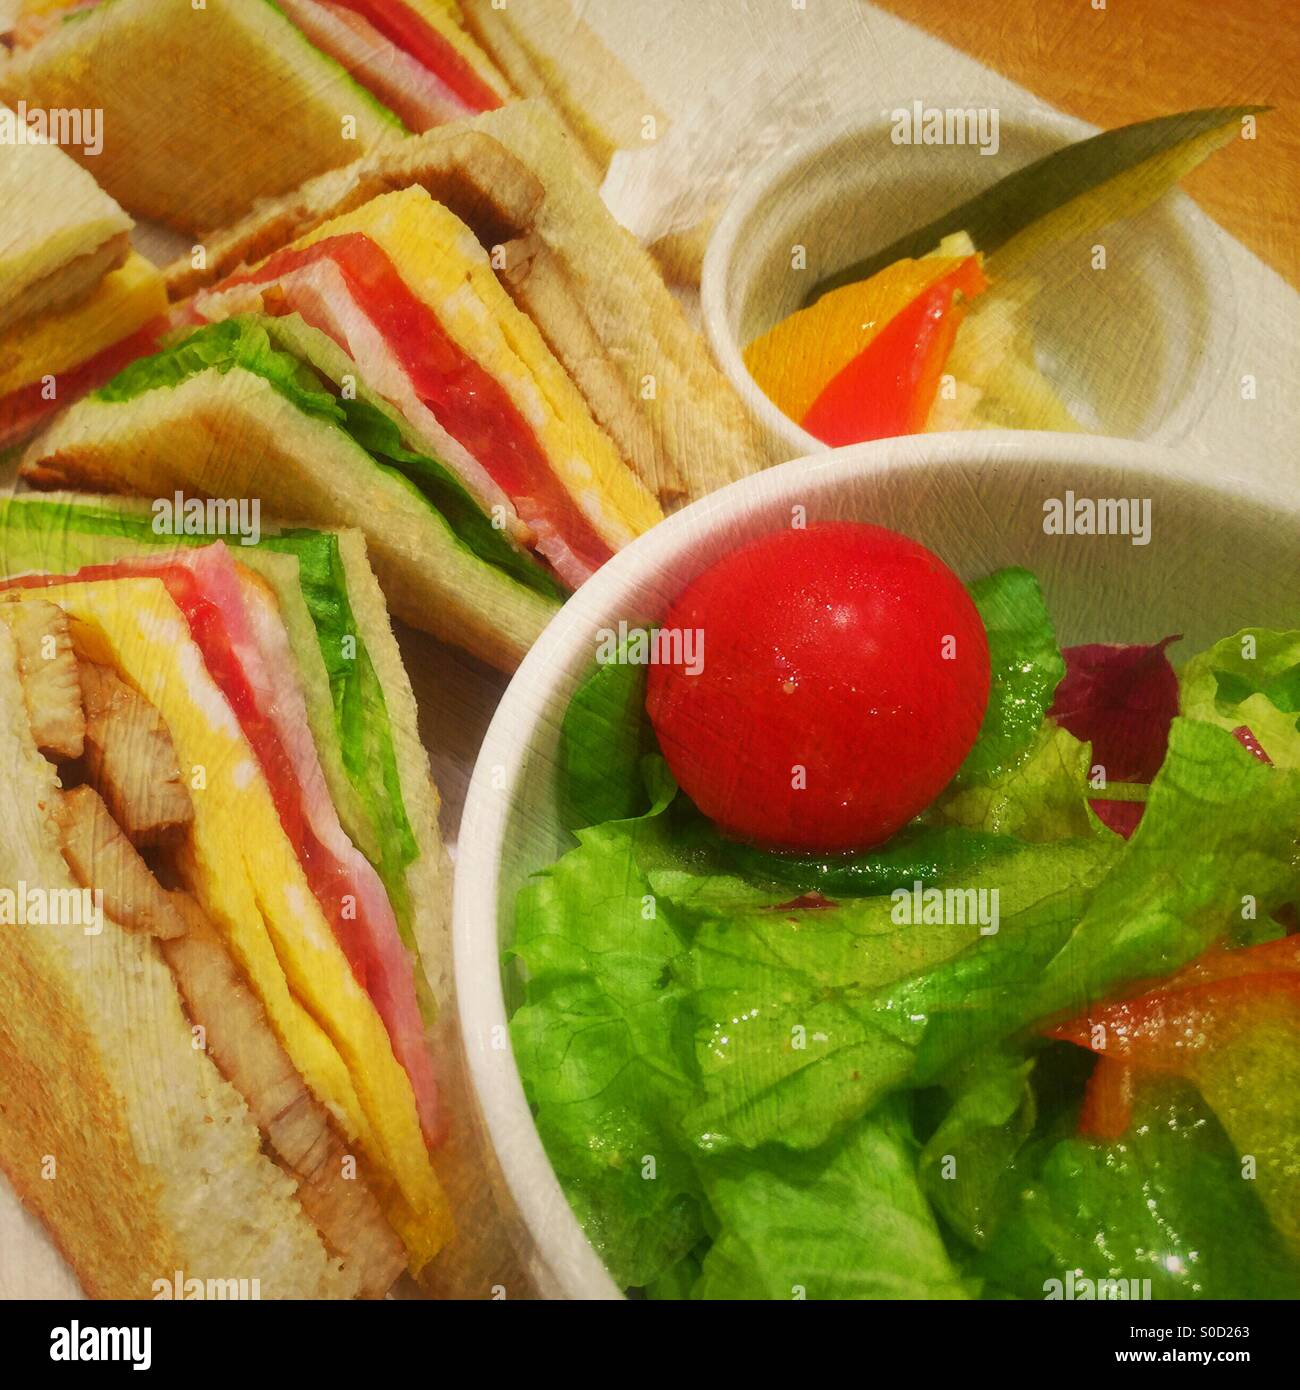 Delicious sandwiches with chicken, egg, tomatoes, lettuce and ham with side serving of pickled vegetables and greenStock Photo